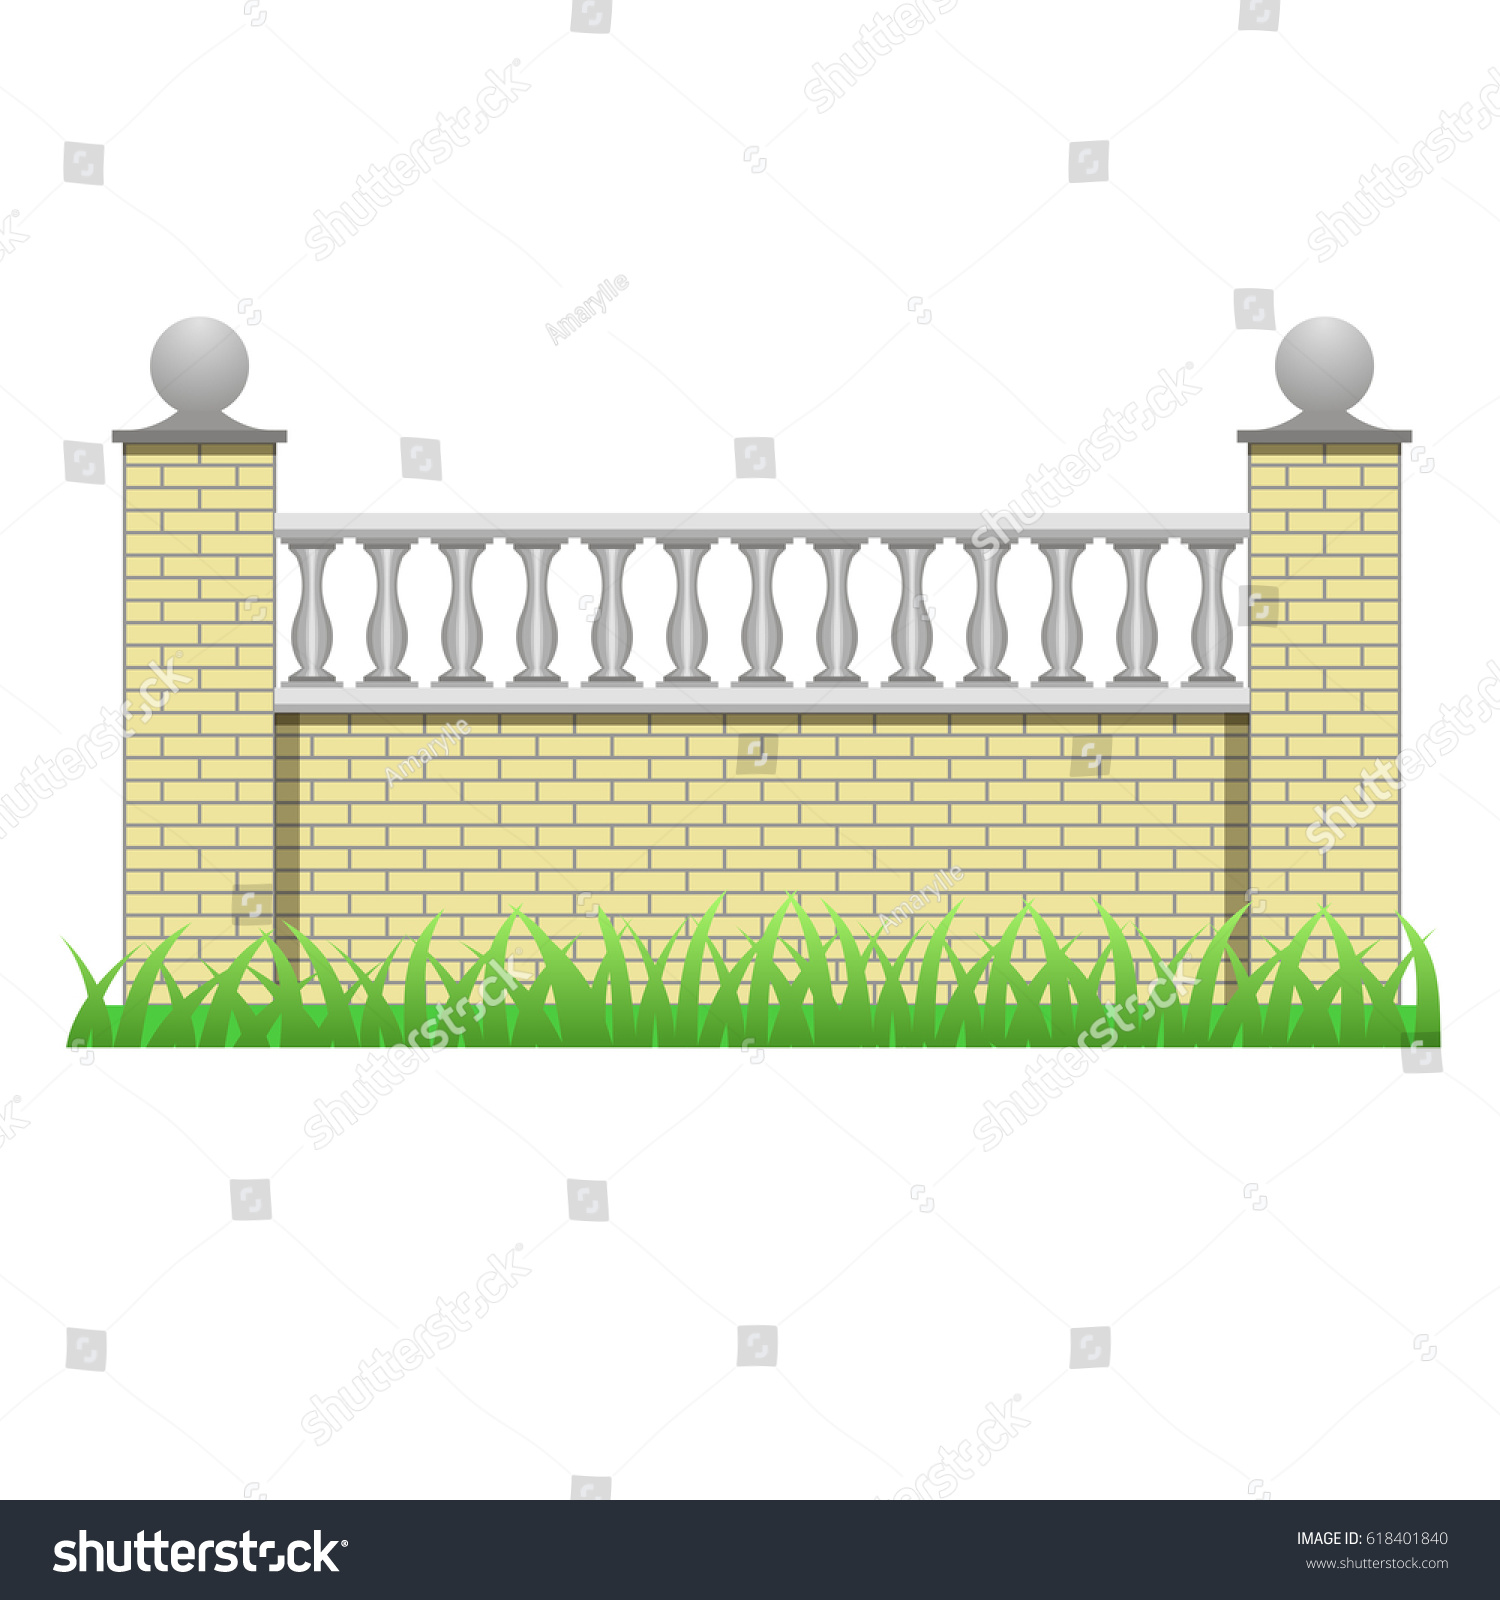 Brick Fence Wall Decorated Balusters Element Stock Vector 618401840 ...